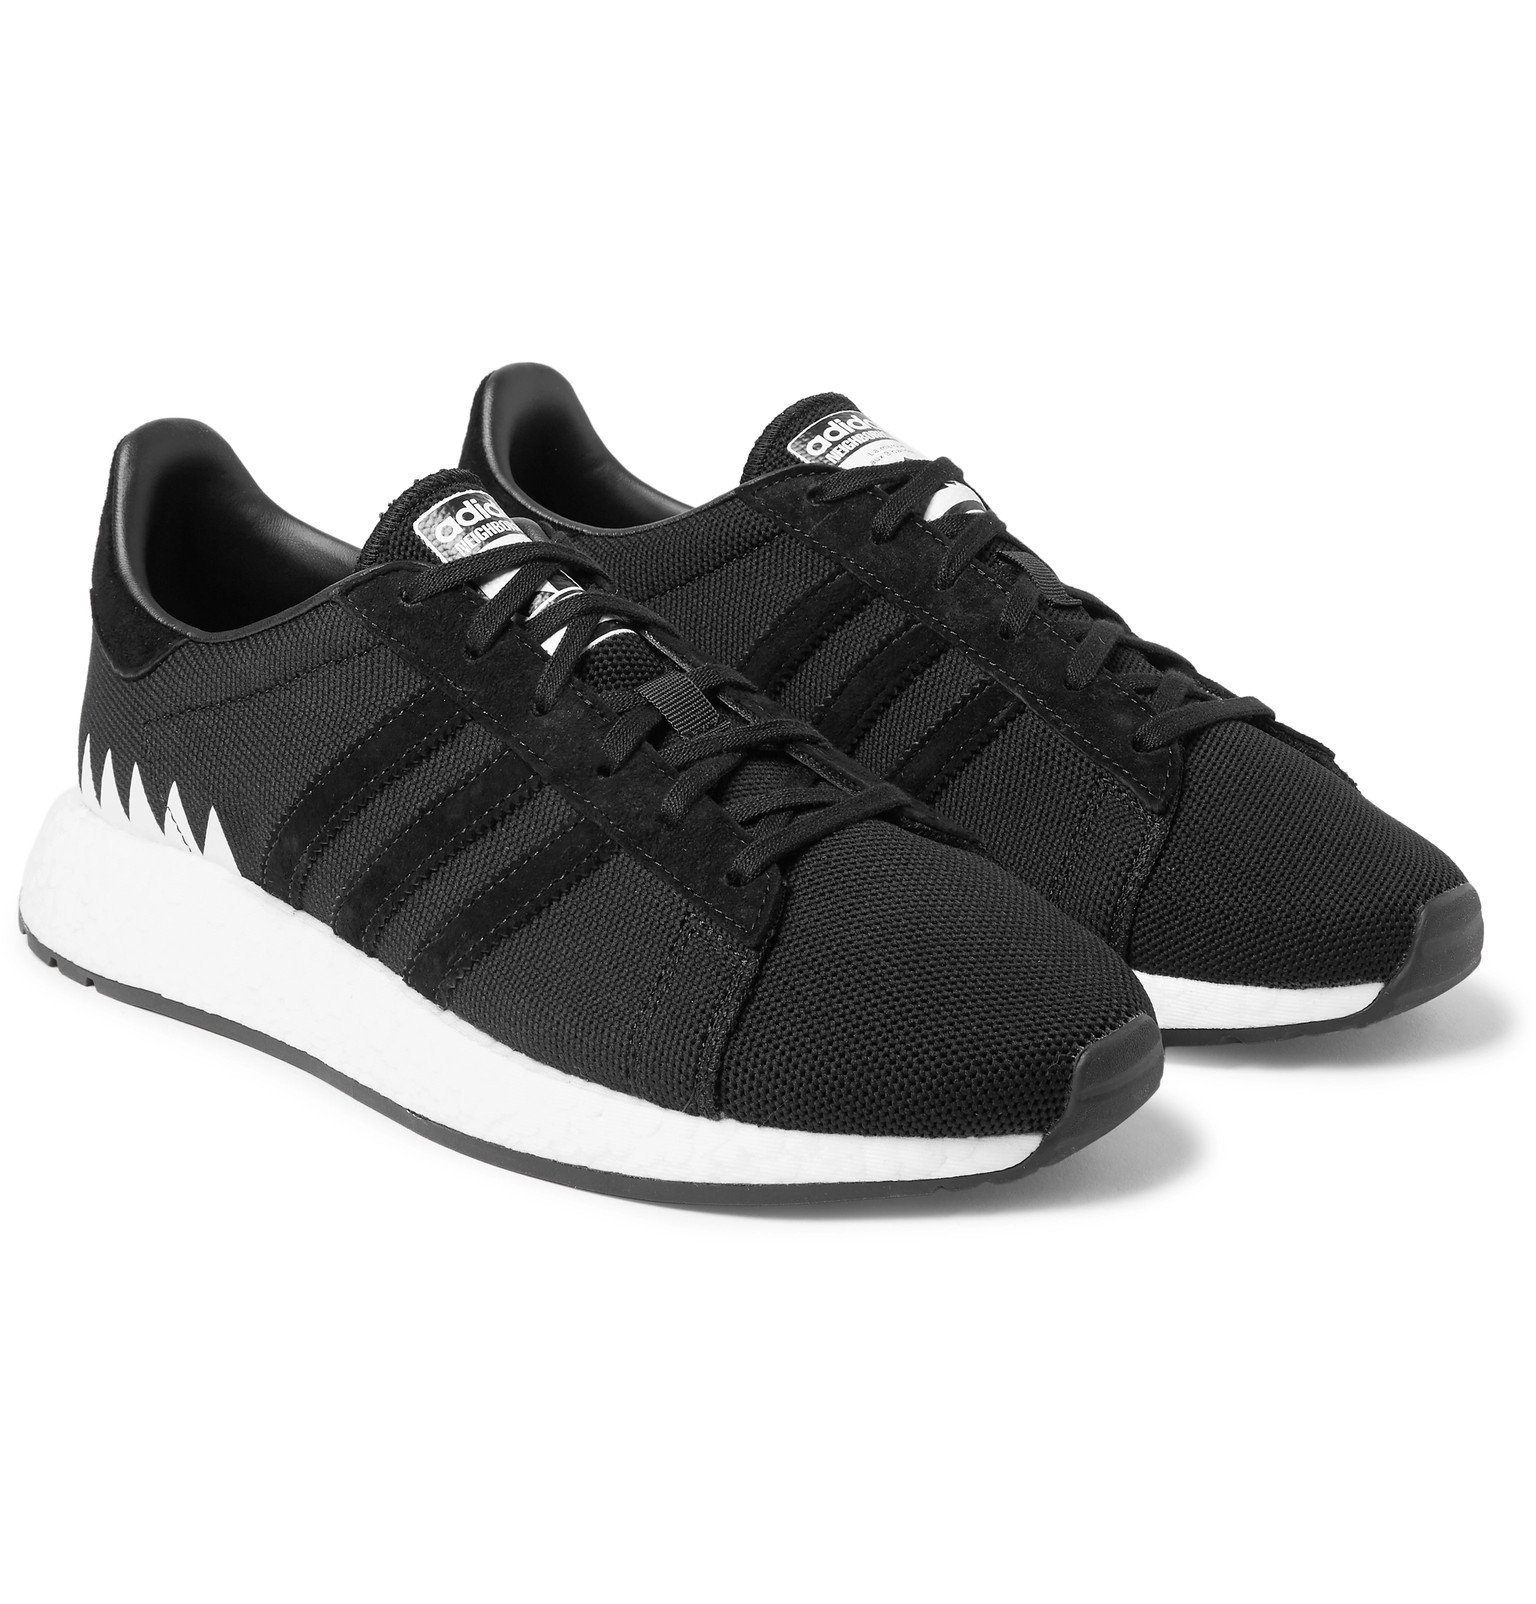 Photo: adidas Consortium - Neighborhood Chop Shop Primeknit Sneakers - Black